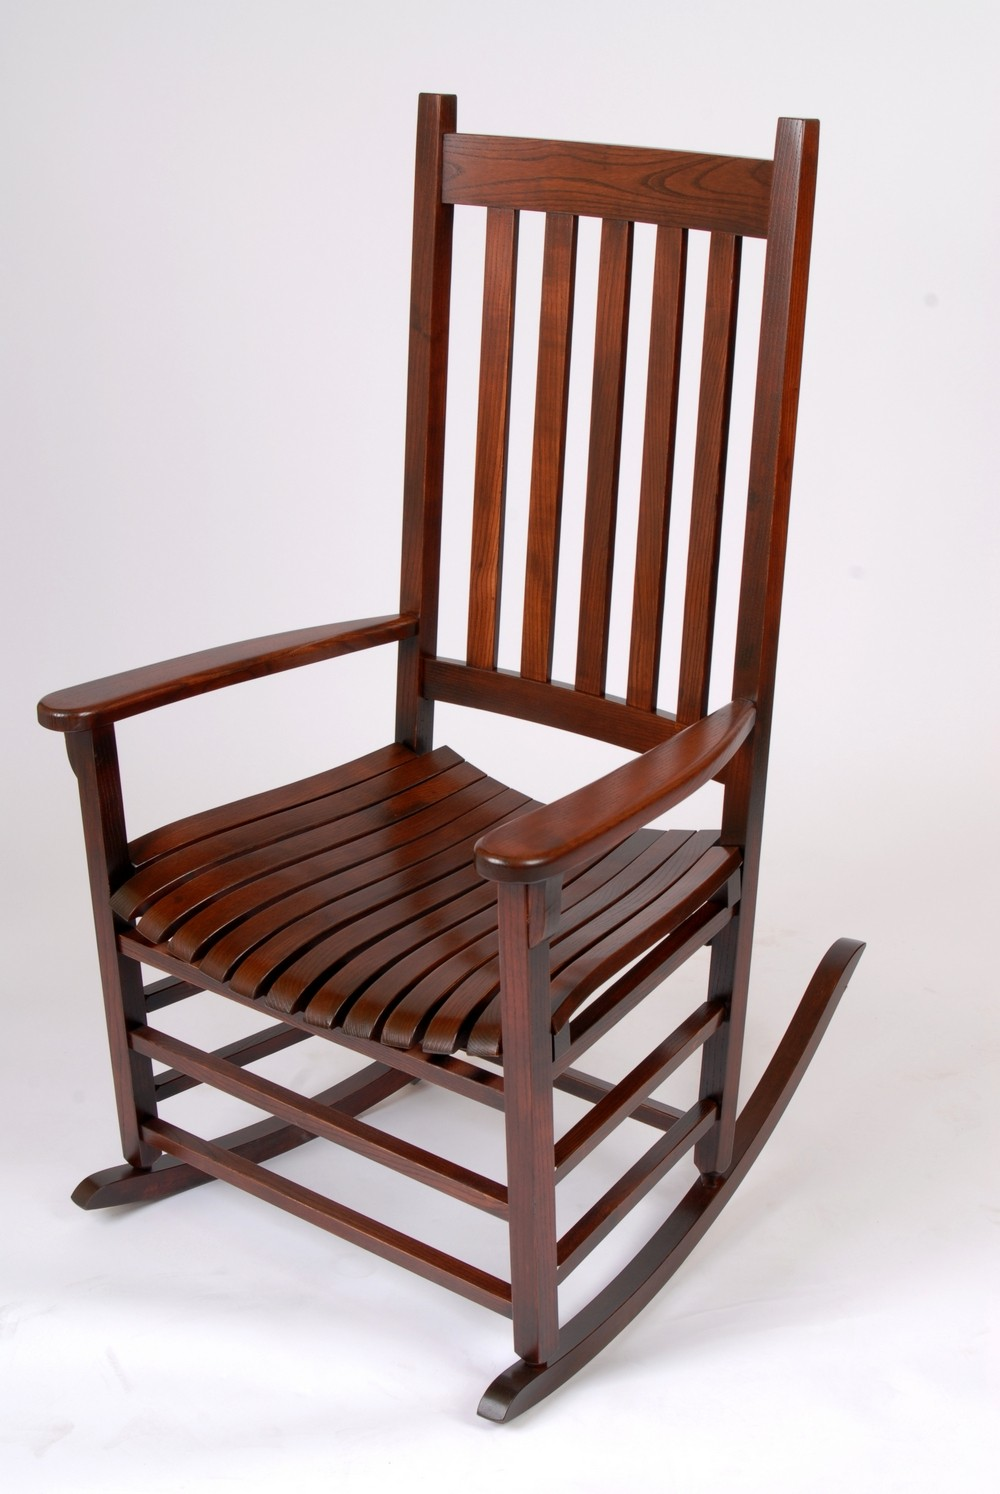 Mission style rocking chair history and designs homesfeed - Rocking chair but ...